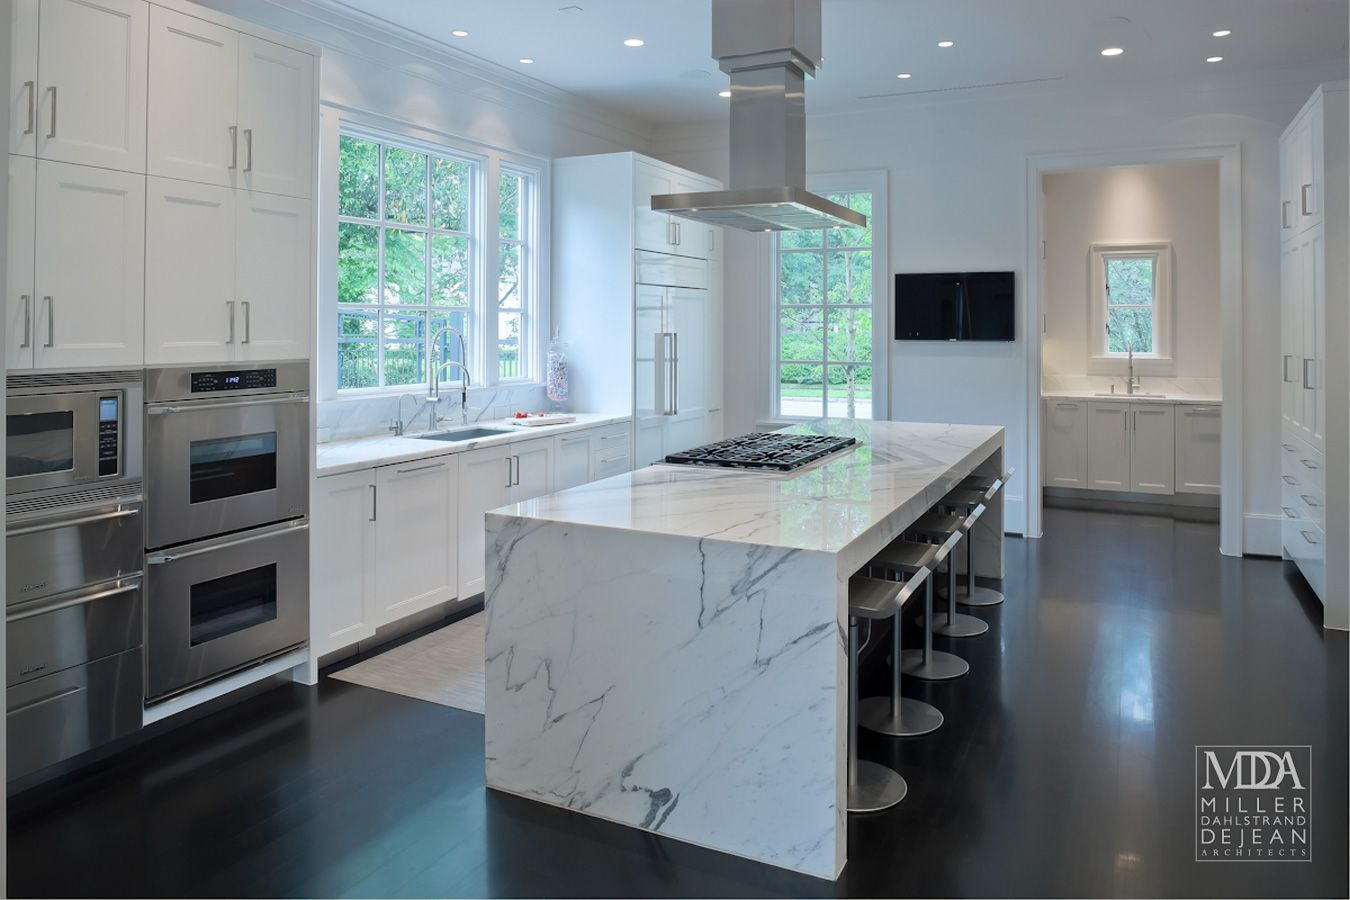 Meadow Lake » Miller Dahlstrand De Jean Architects | Kitchens ...